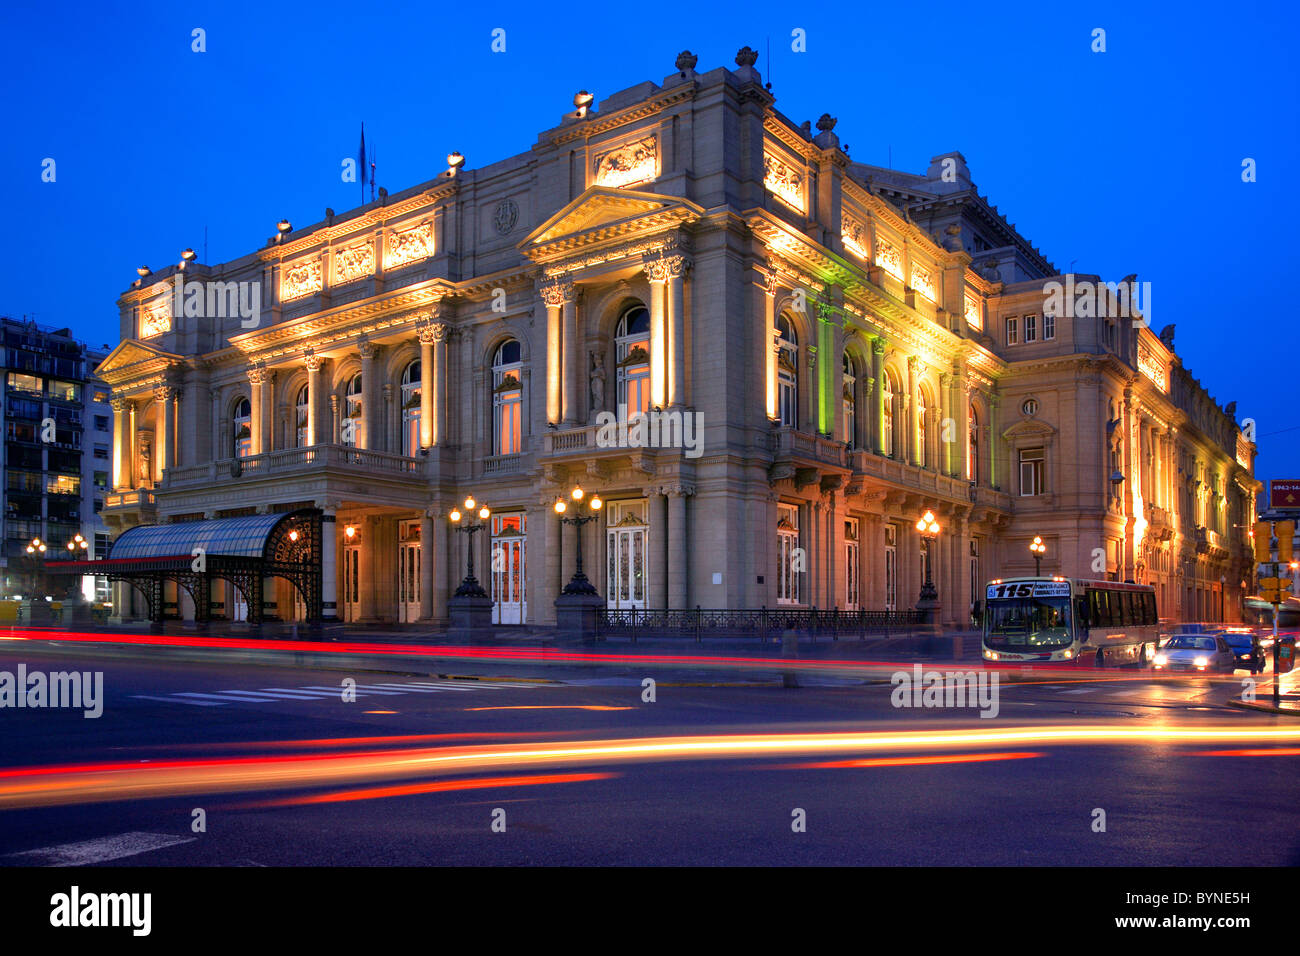 Colon Theater, after the bicentenarian celebration and its restauration, in 2010. - Stock Image